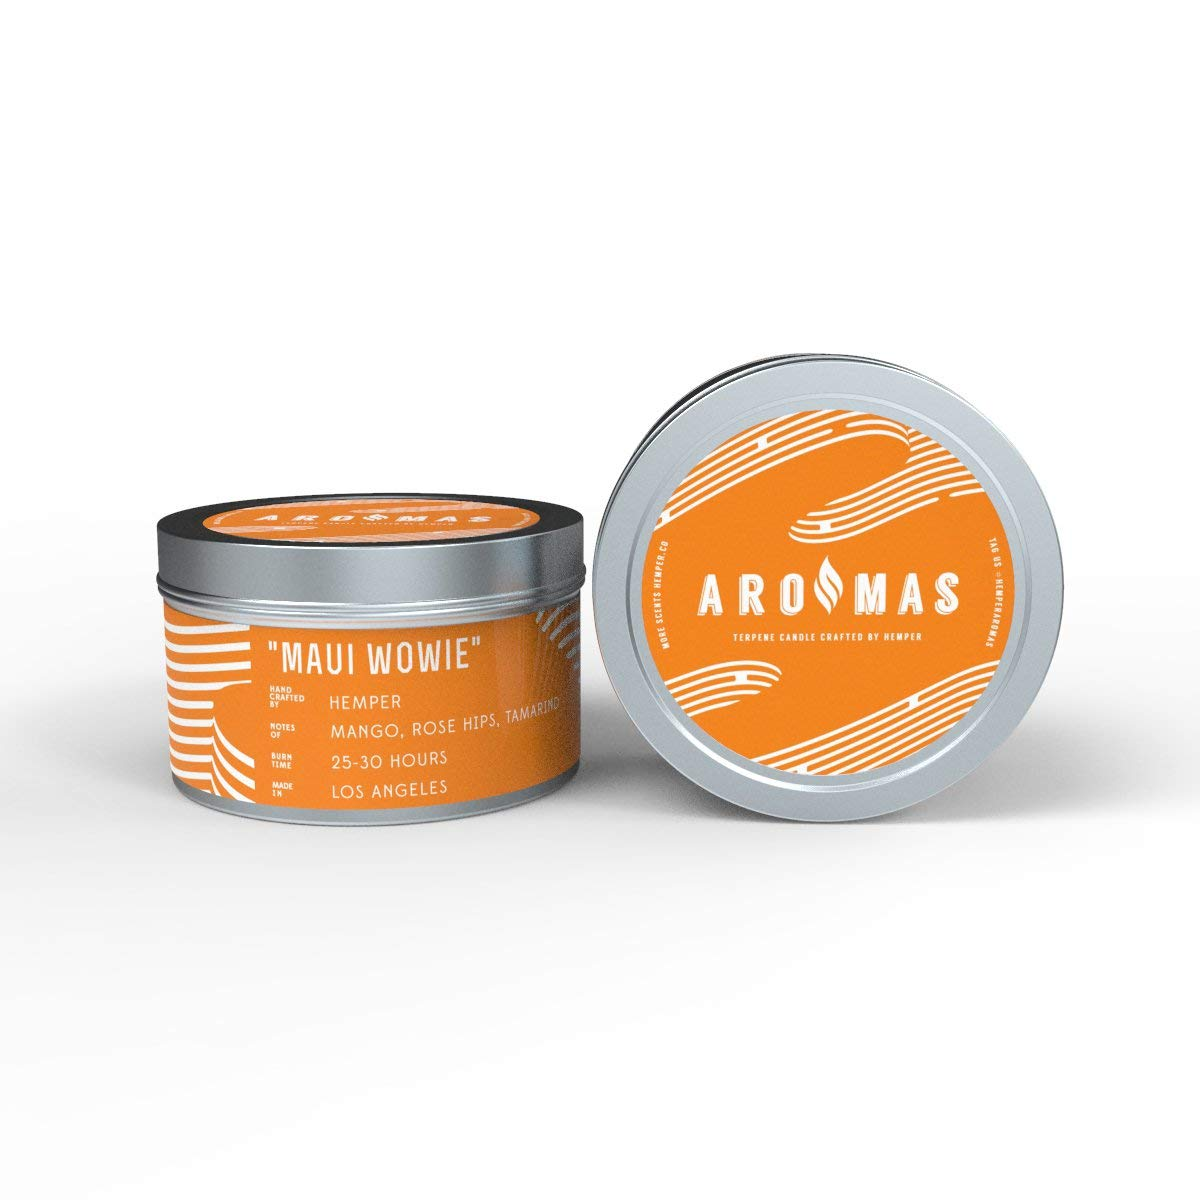 Aromas Luxury Scented Soy Odor Eliminating Candles Long Burning Hand Poured in The USA Maui Wowie Scent